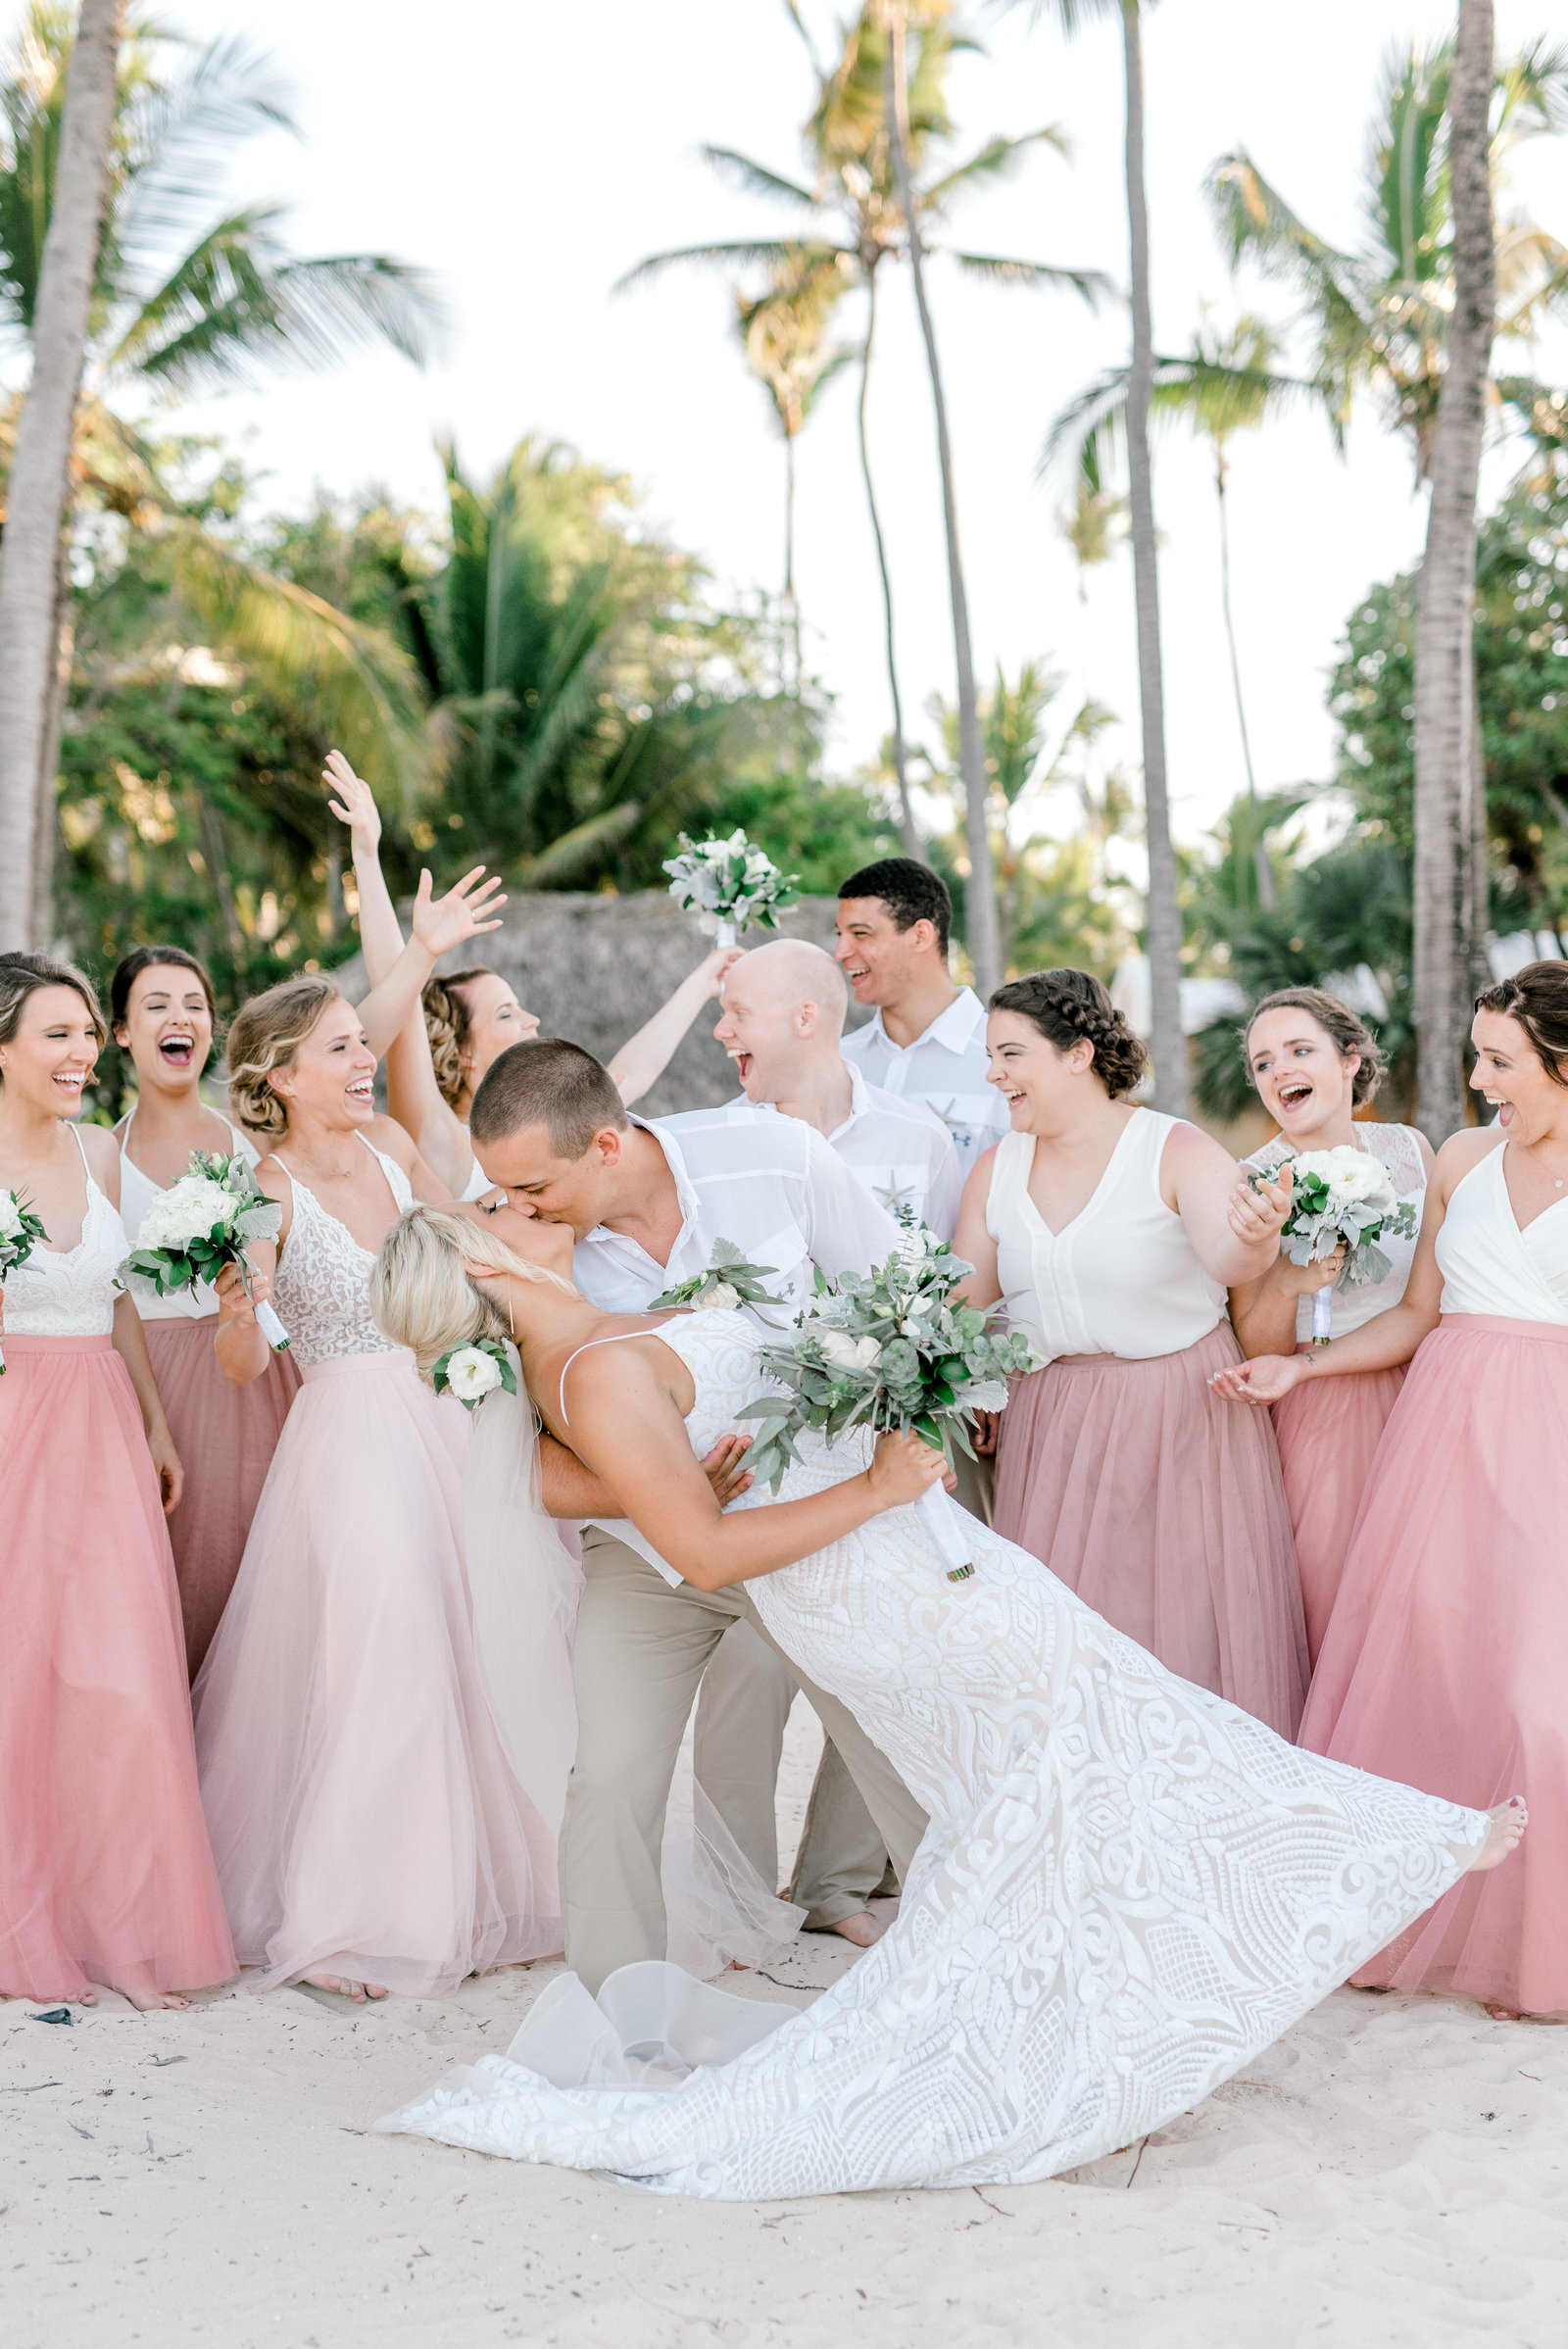 Carribbean Wedding- Bridal Party at Destination Wedding